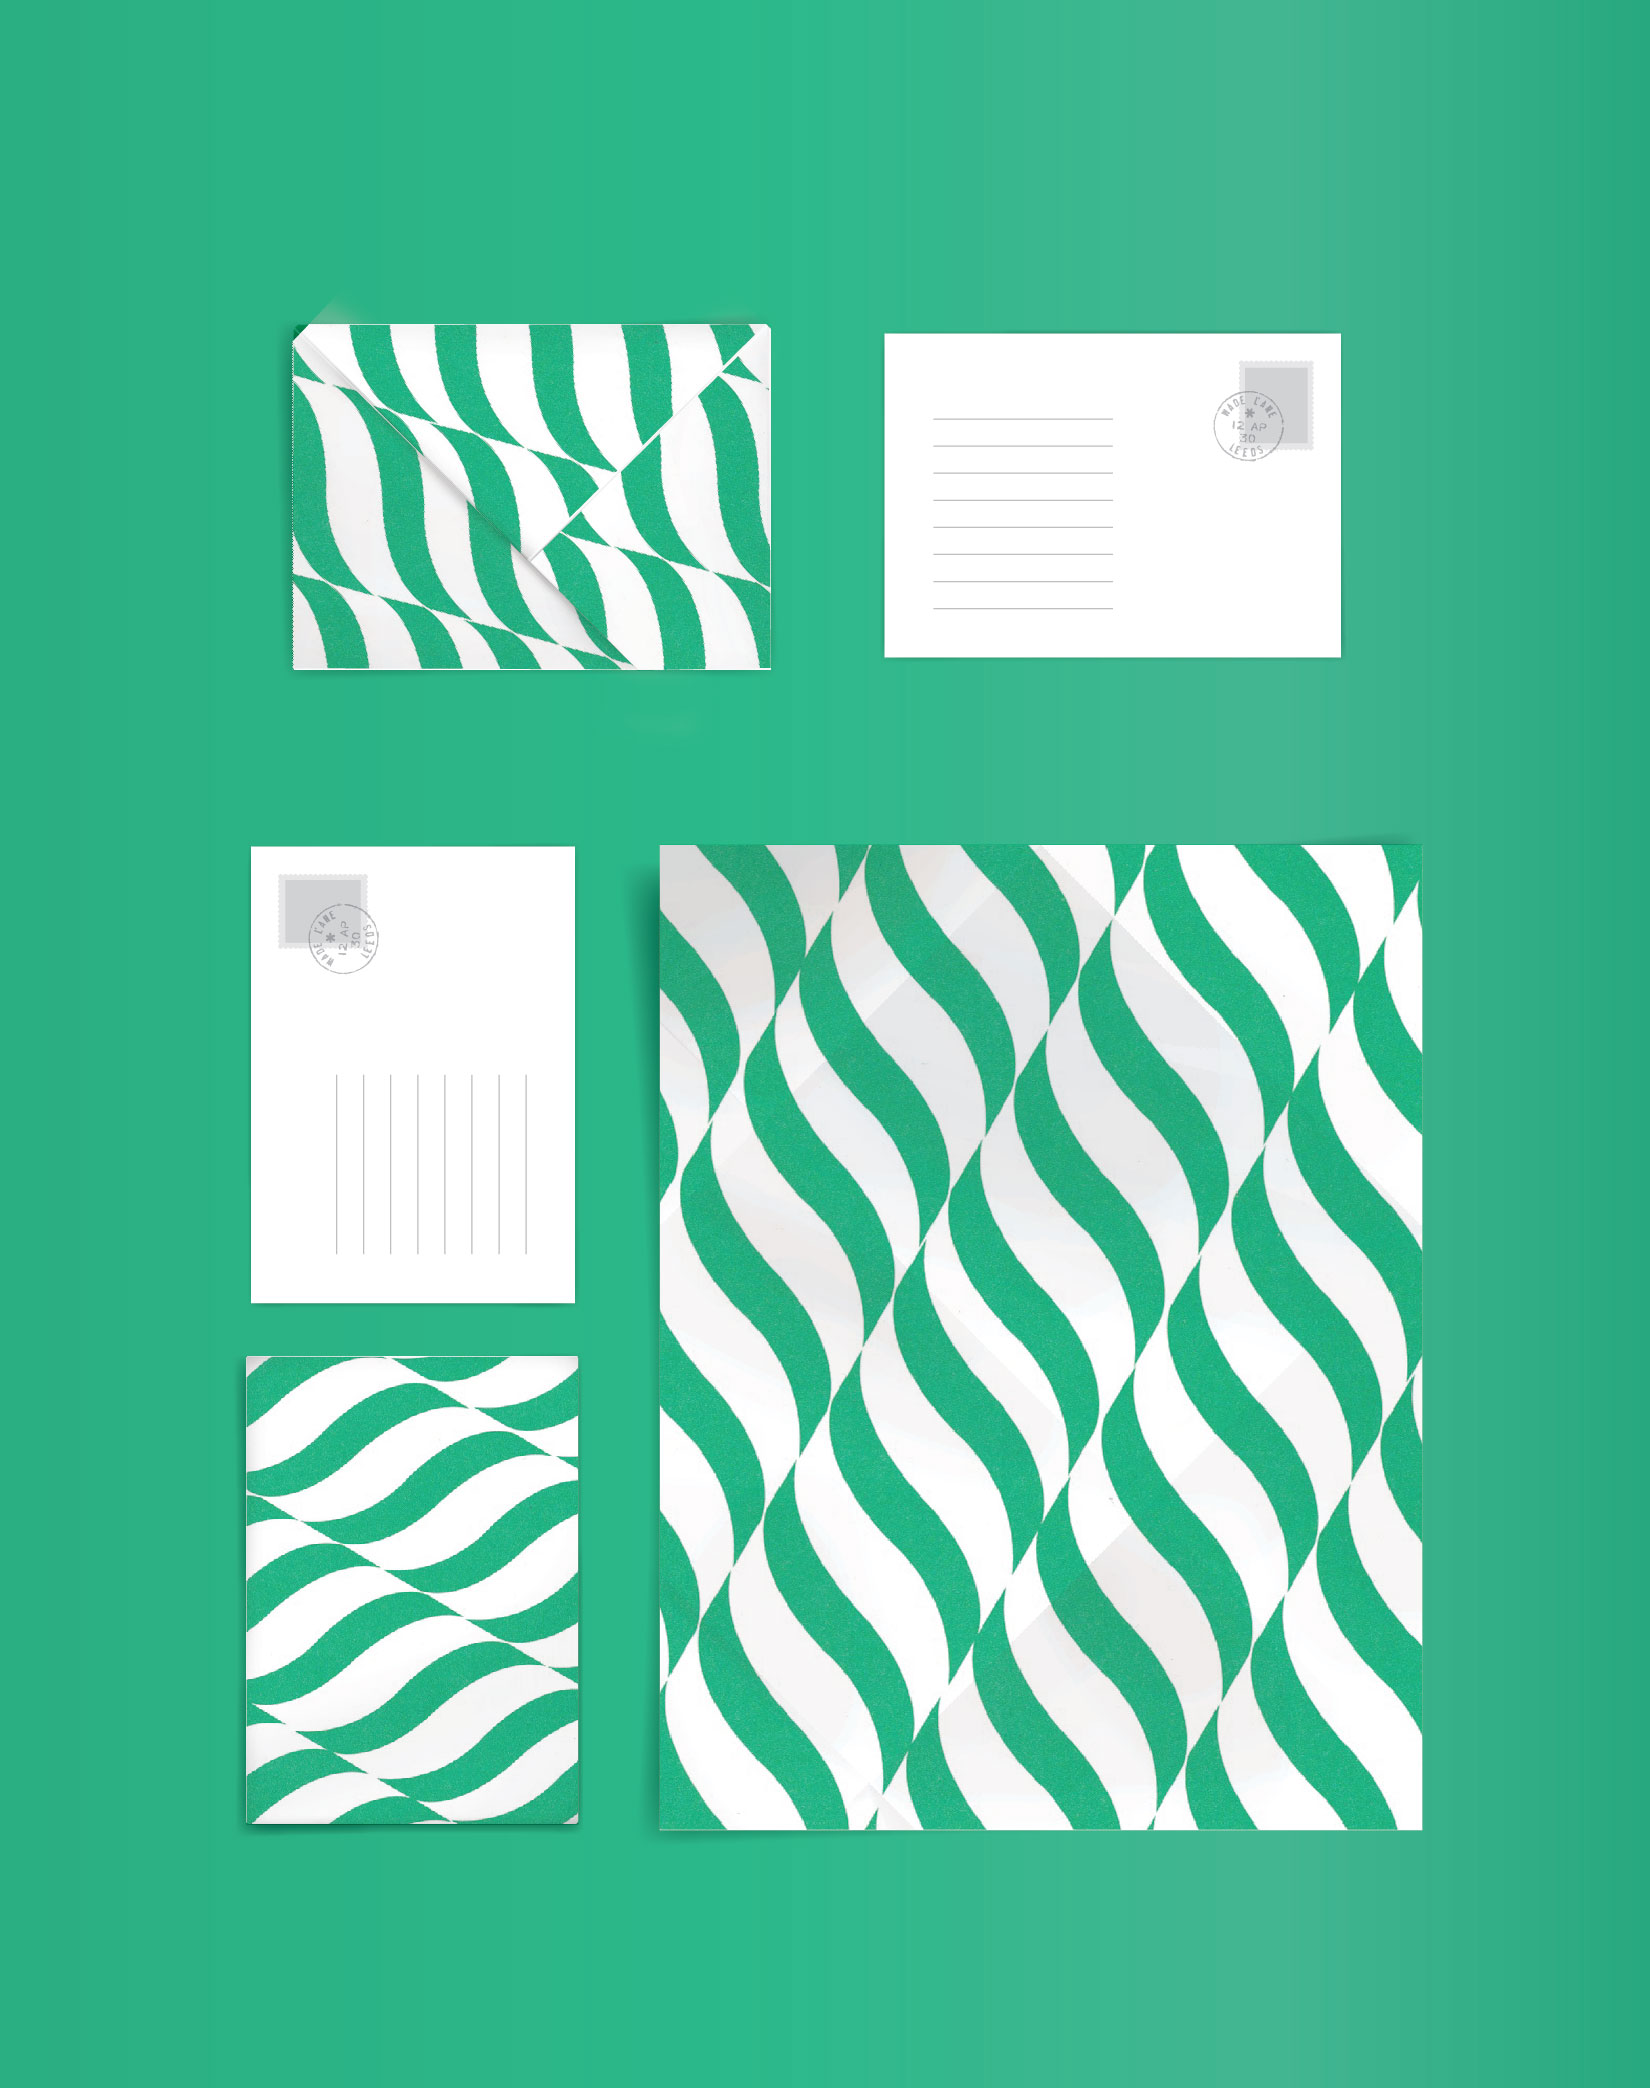 origami envelope_ design layout green